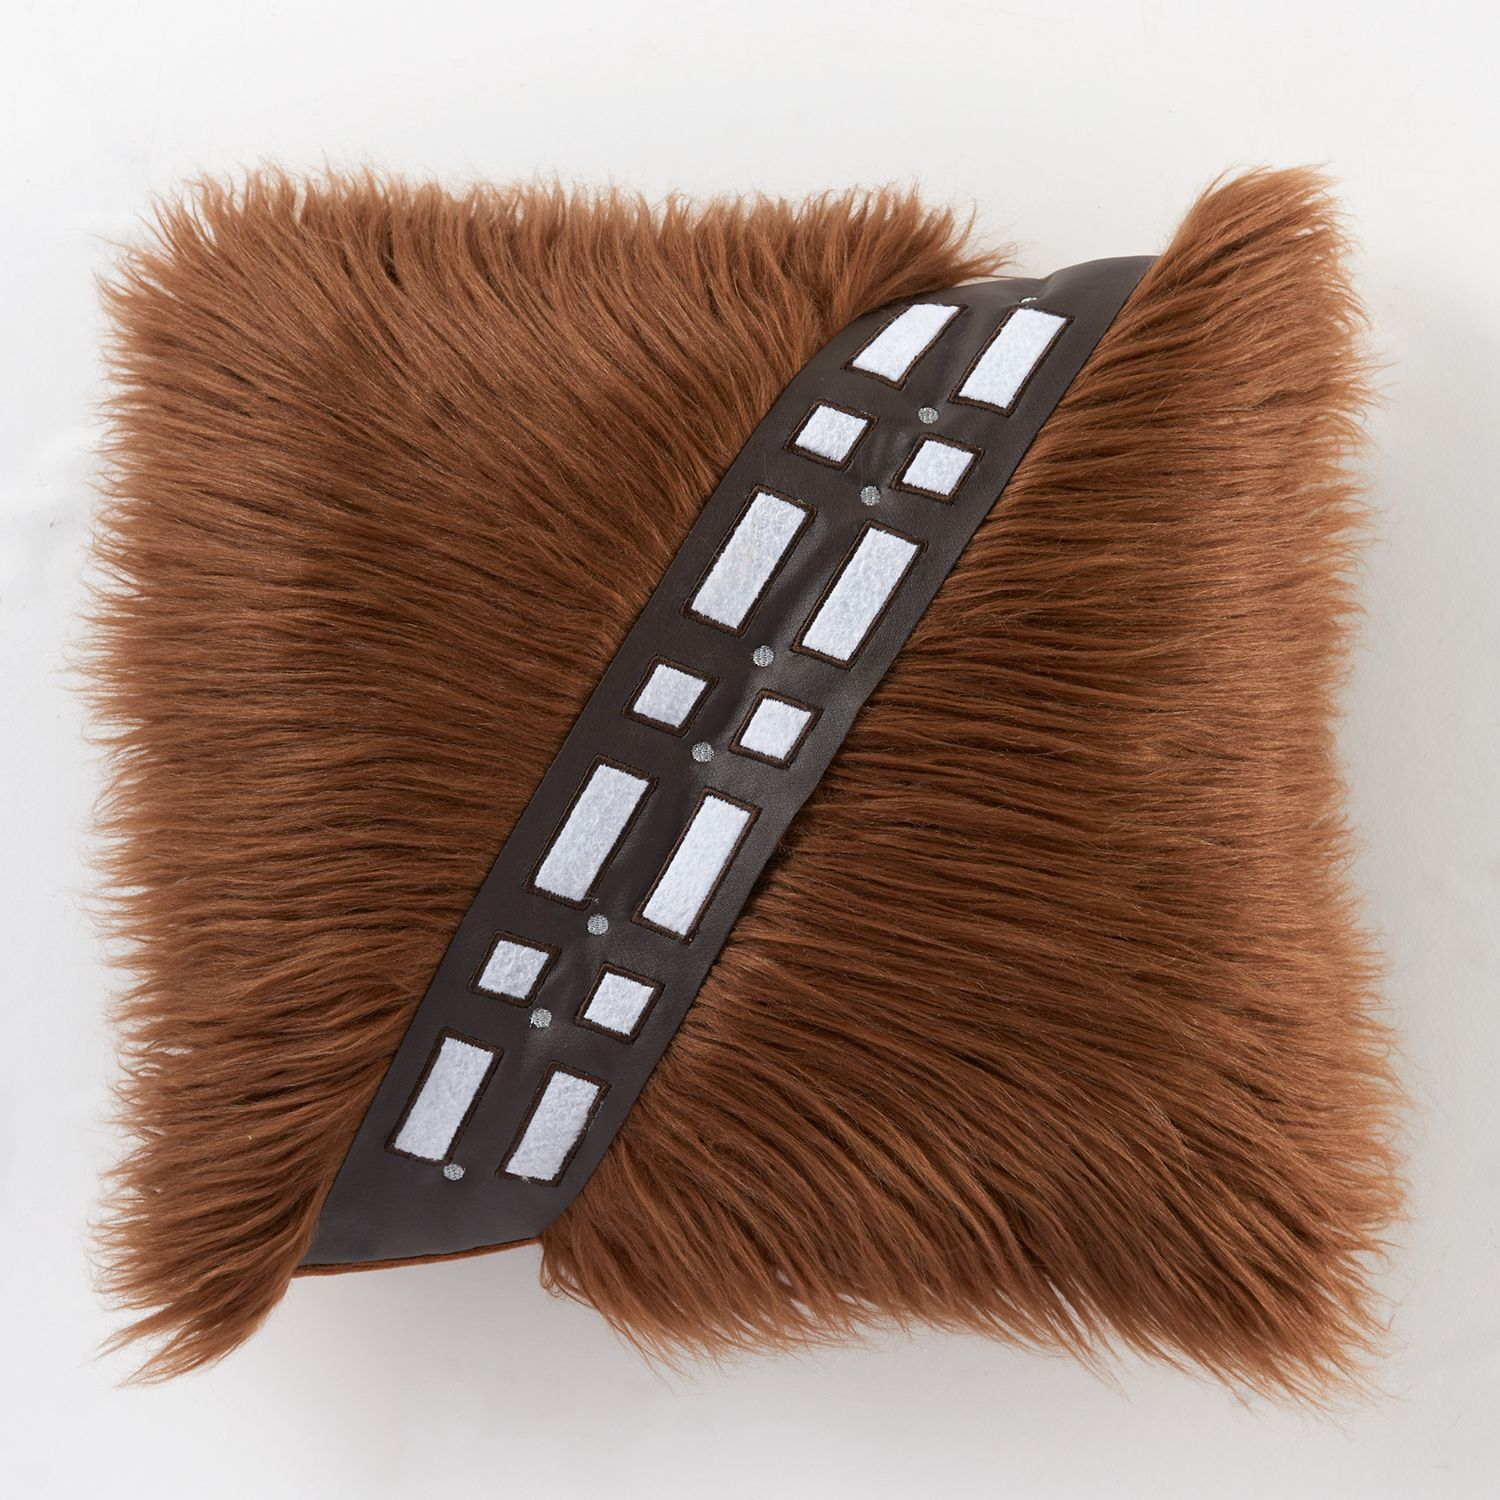 Star Wars Classic Chewbacca Throw Pillow